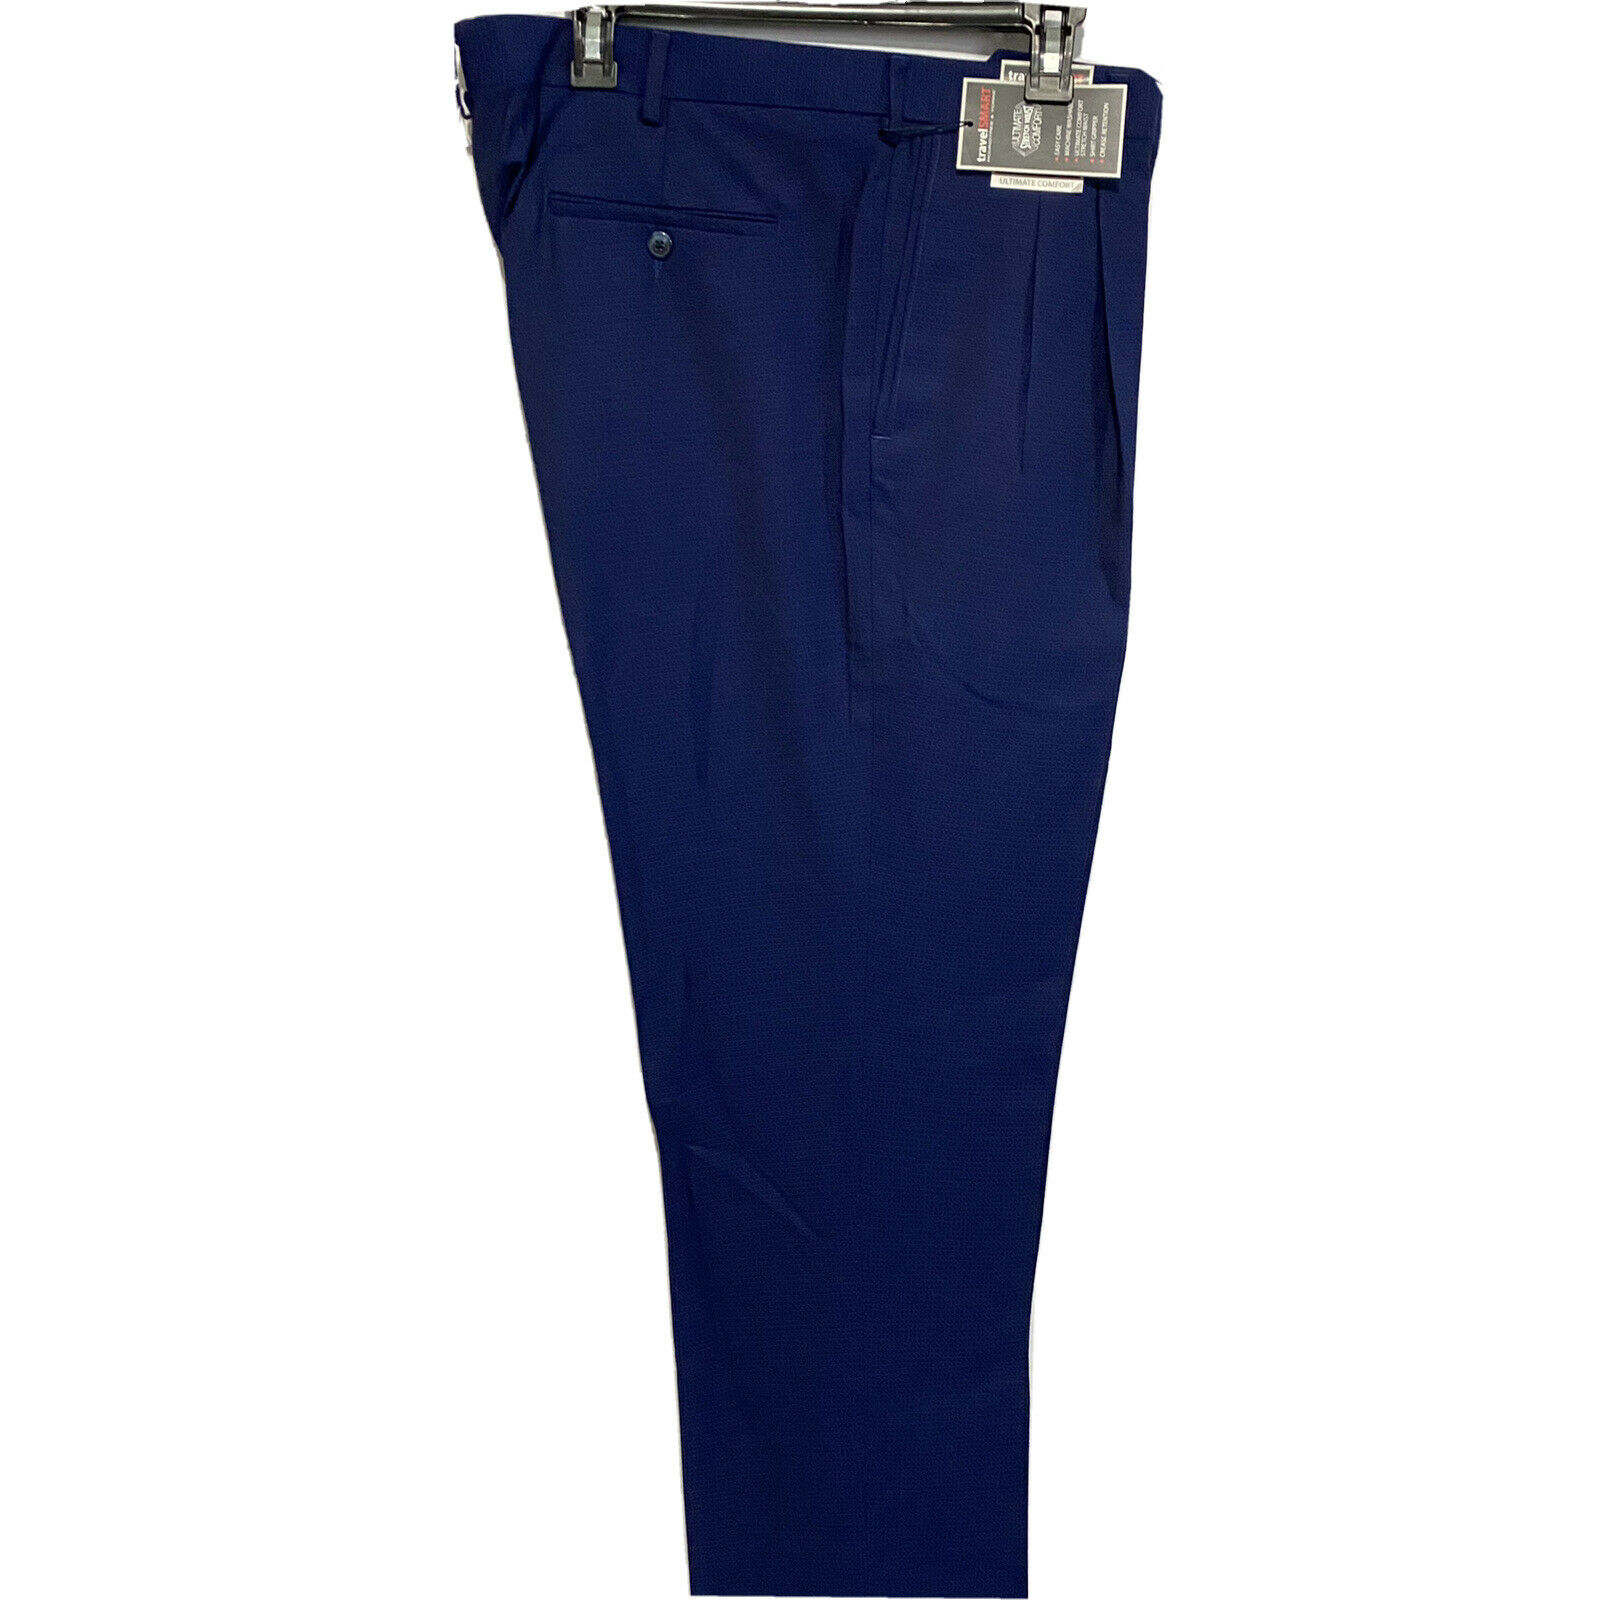 Roundtree & Yorke Travel Smart Ultimate Comfort Classic Fit Pants 36×32 Blue Clothing, Shoes & Accessories